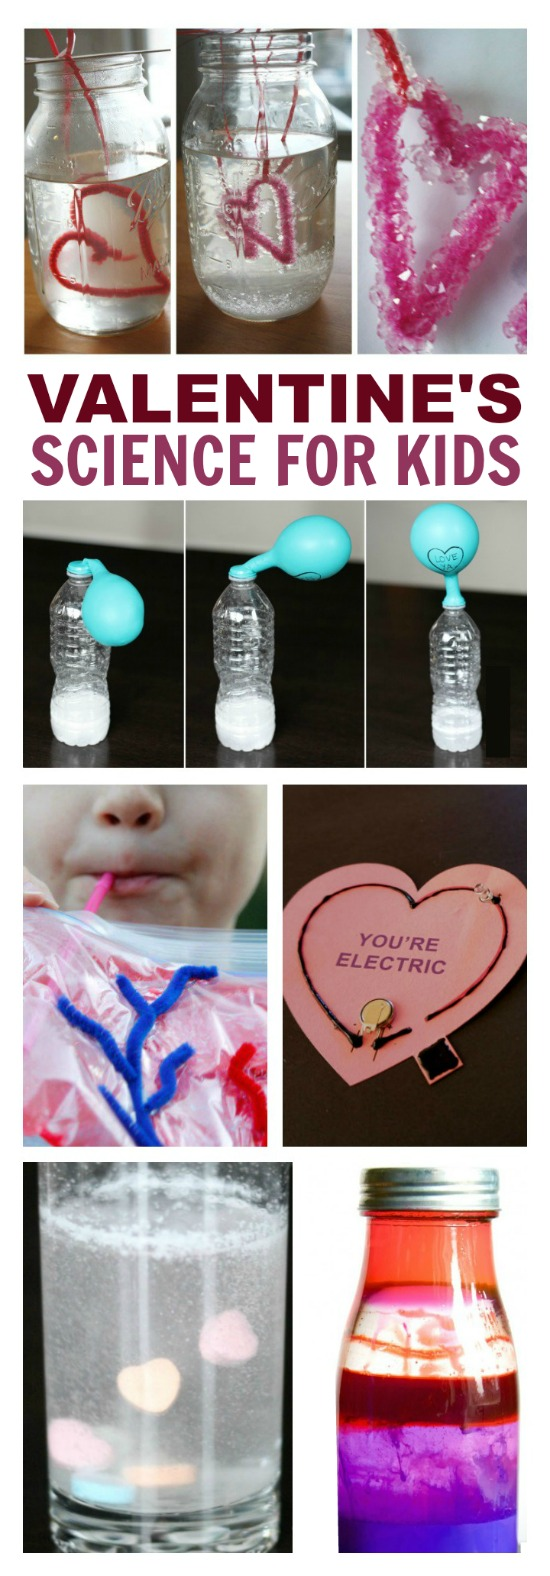 VALENTINE'S SCIENCE FOR KIDS- 16 fun experiments!